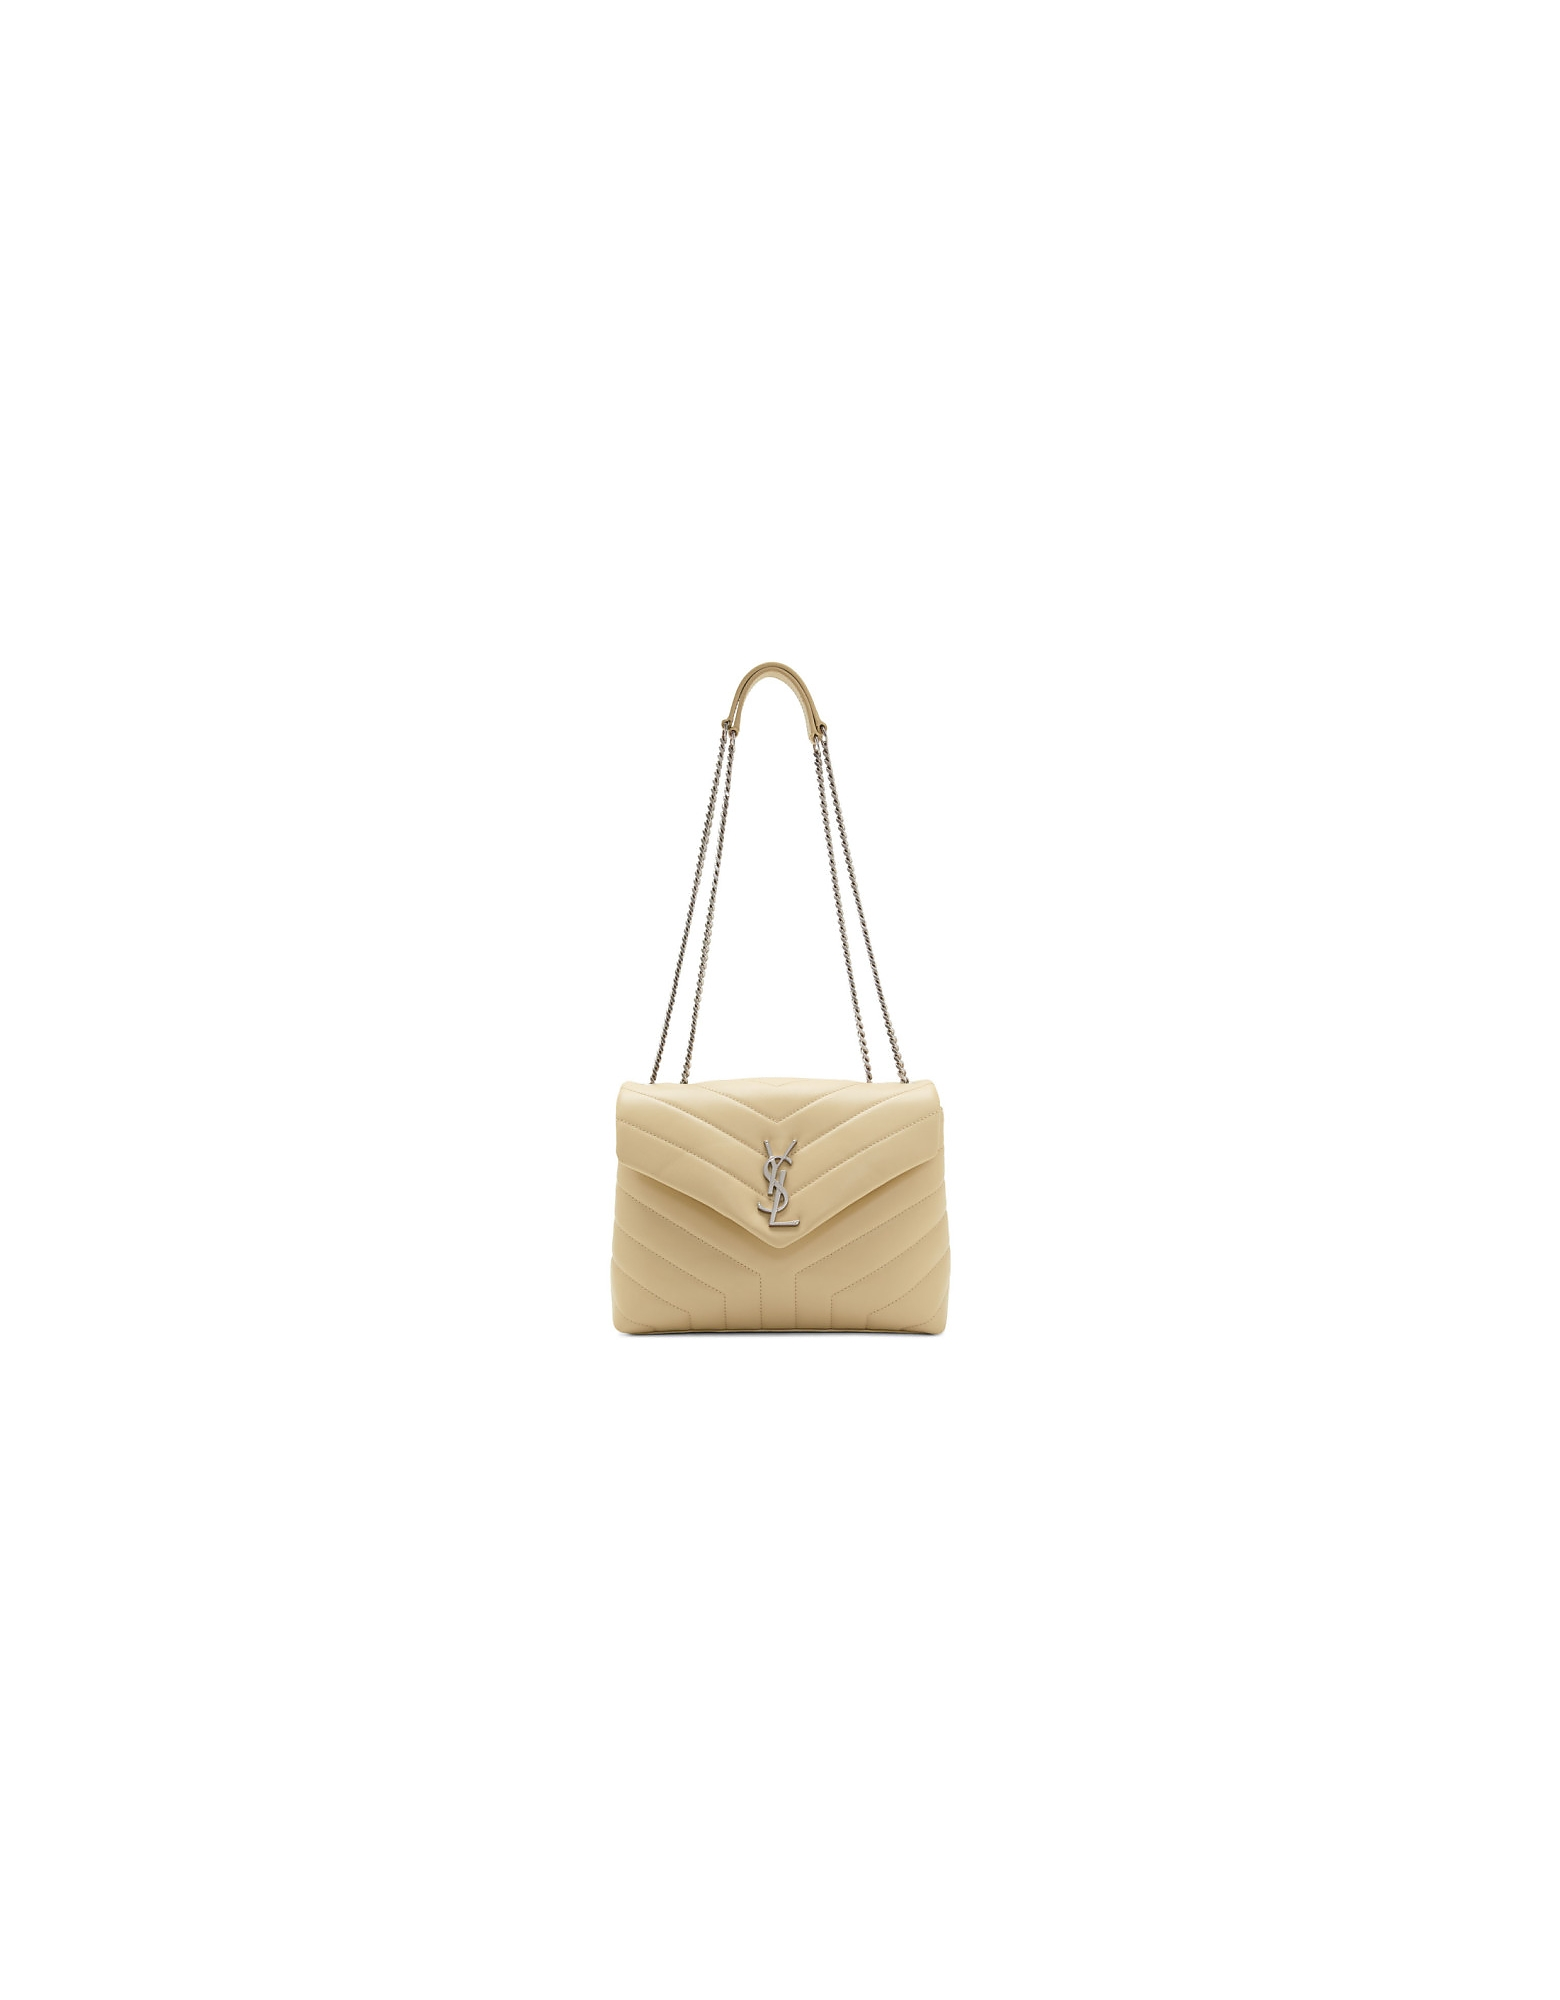 Saint Laurent Designer Handbags, Beige Small Loulou Bag